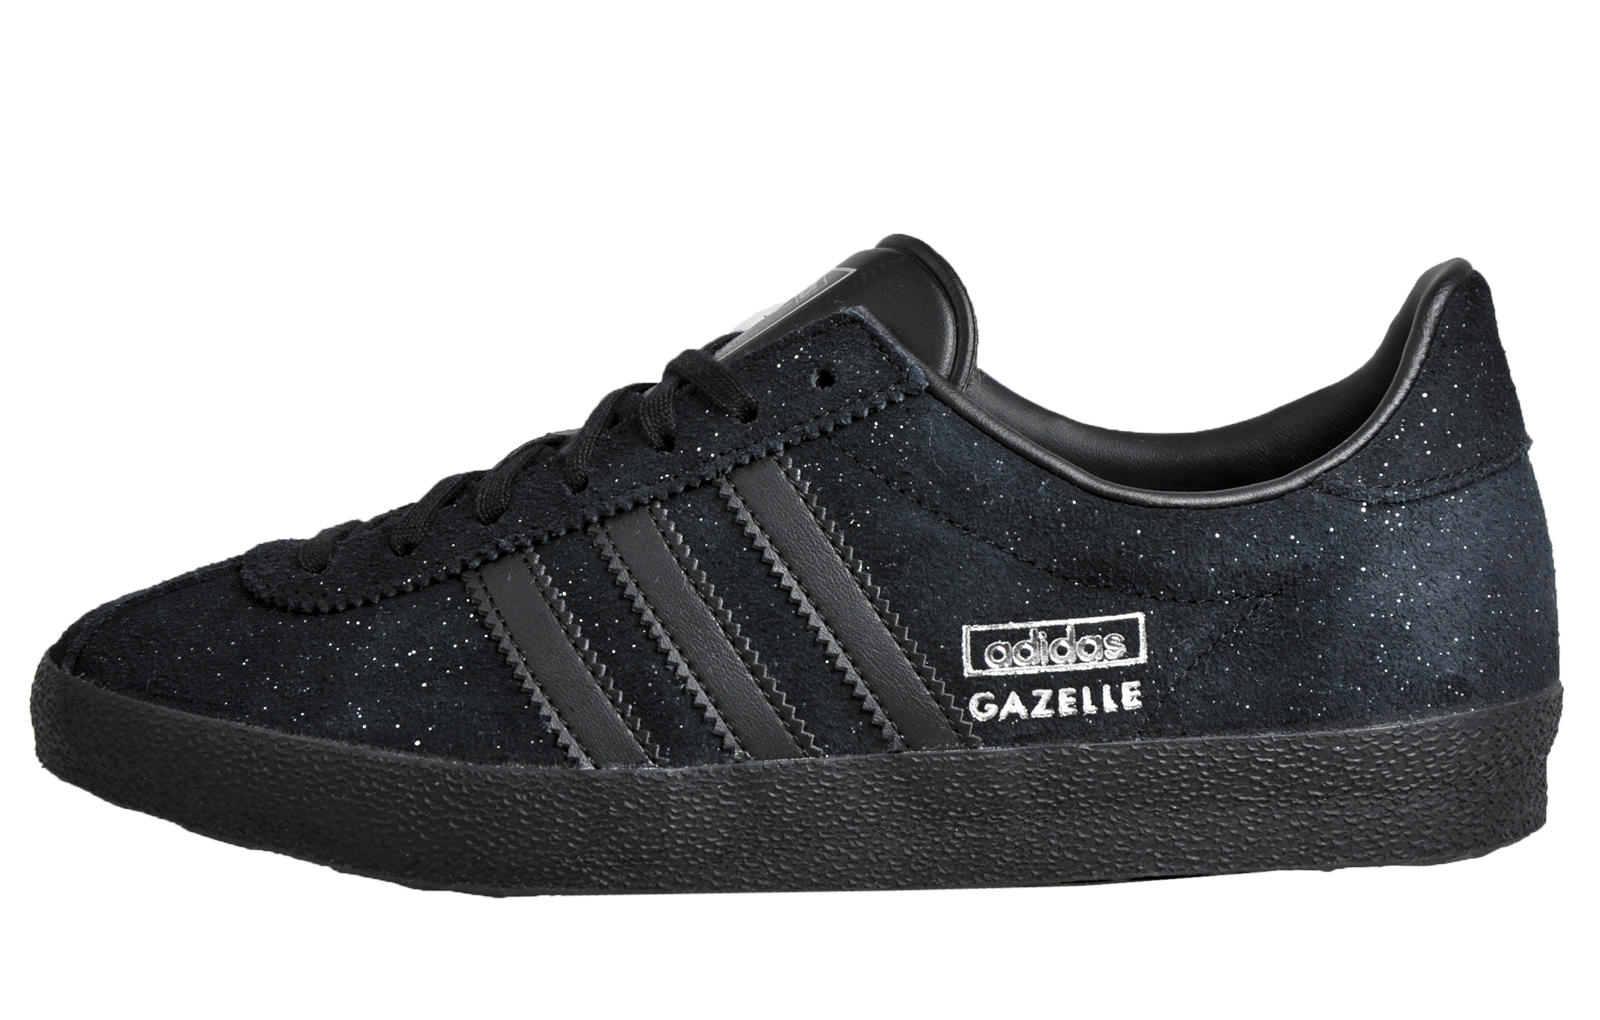 Adidas Gazelle OG Womens Glitz Suede Leather Retro Trainers Ltd Edition  Black